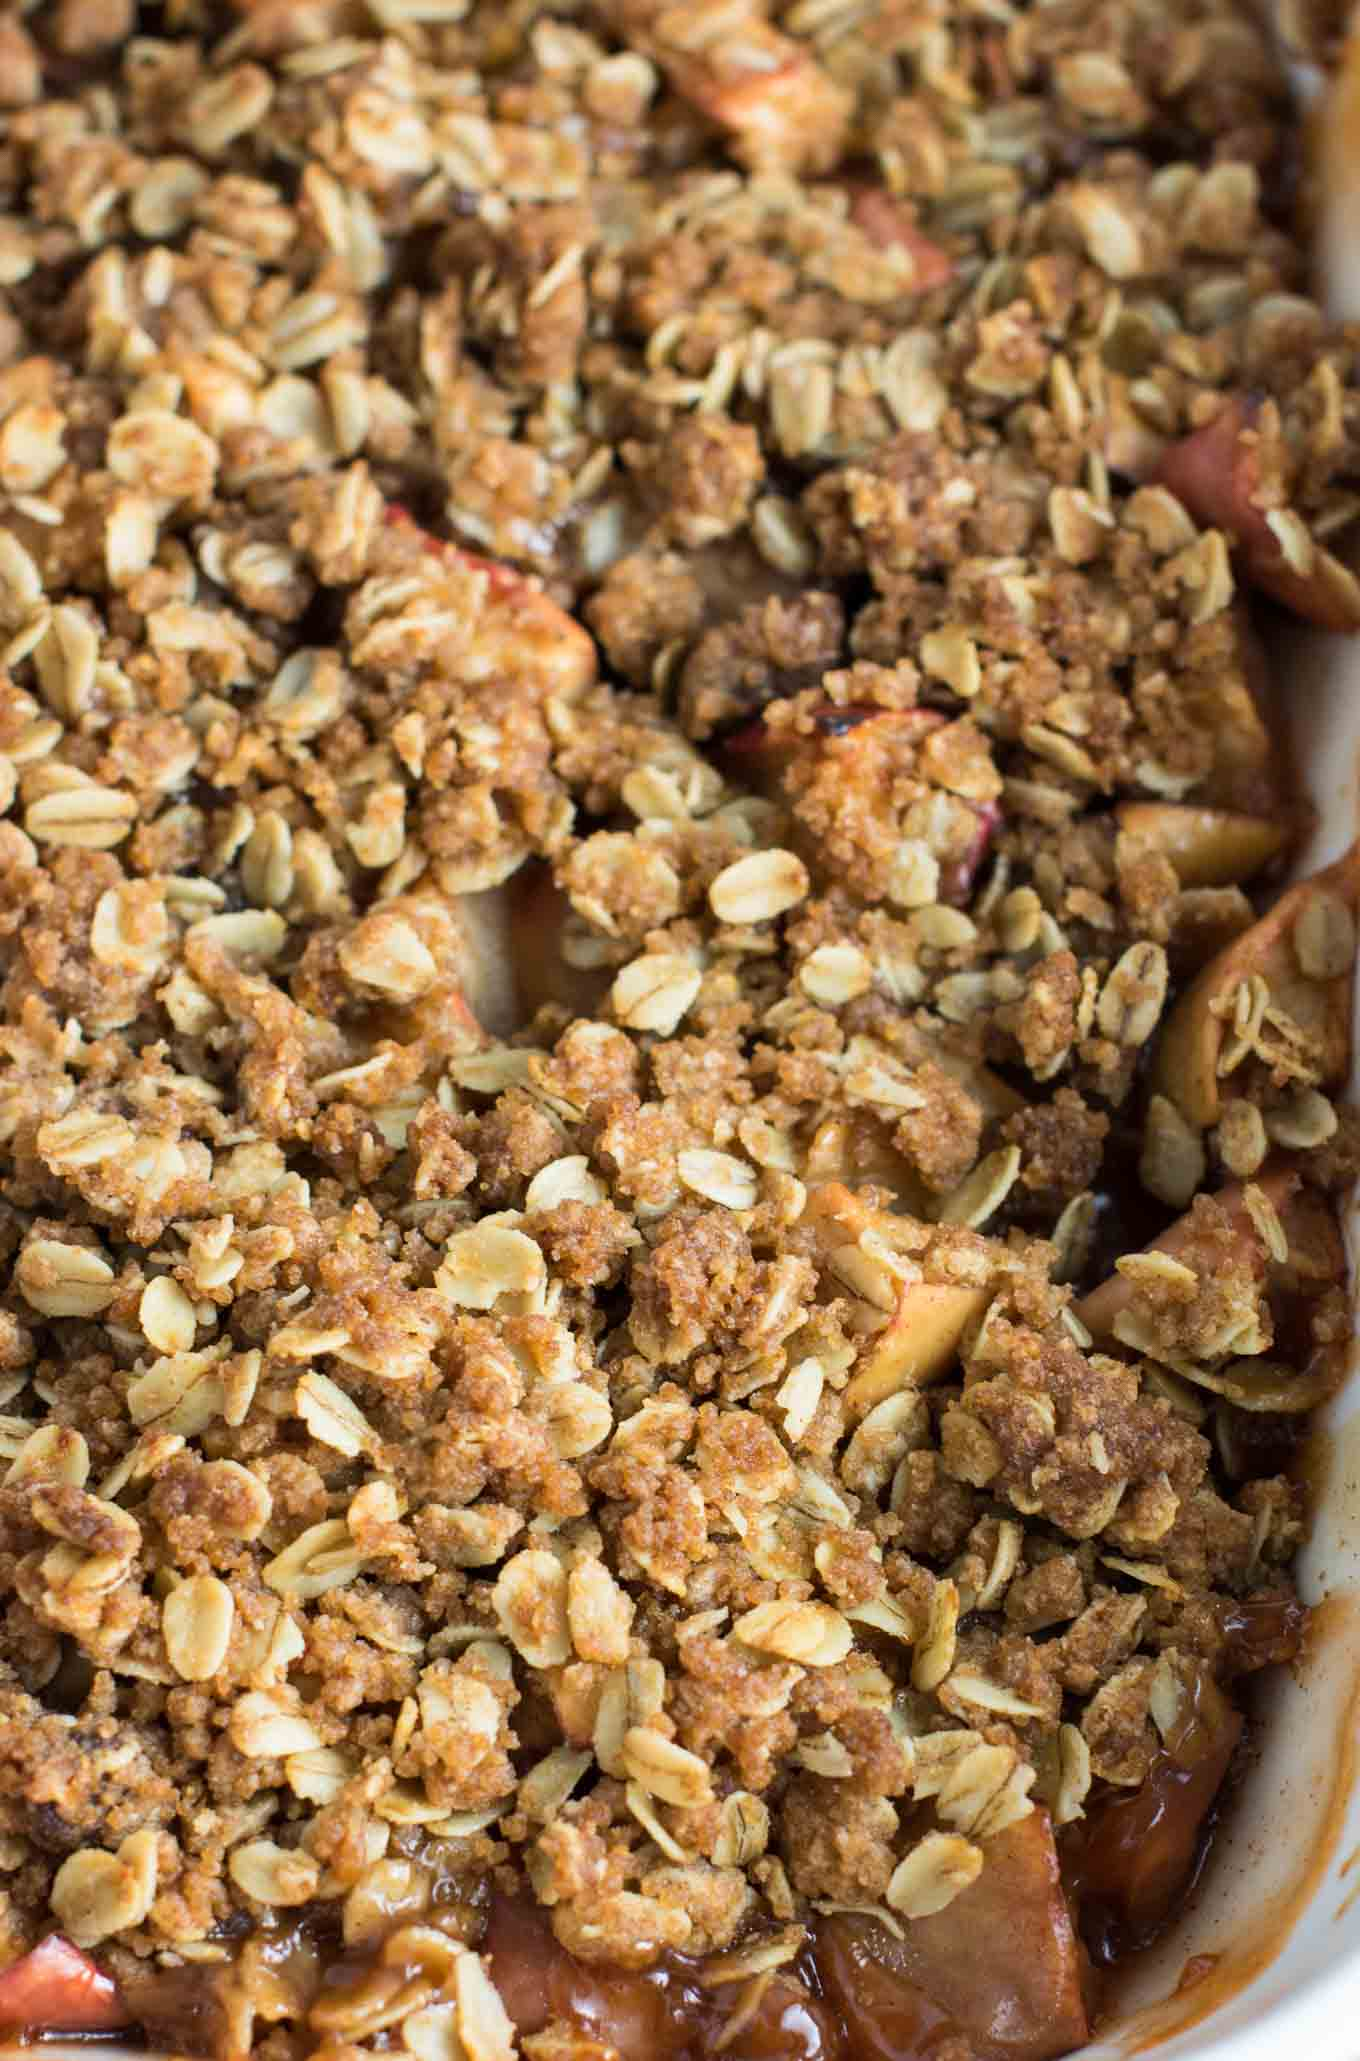 vegan apple crisp finished in the baking dish